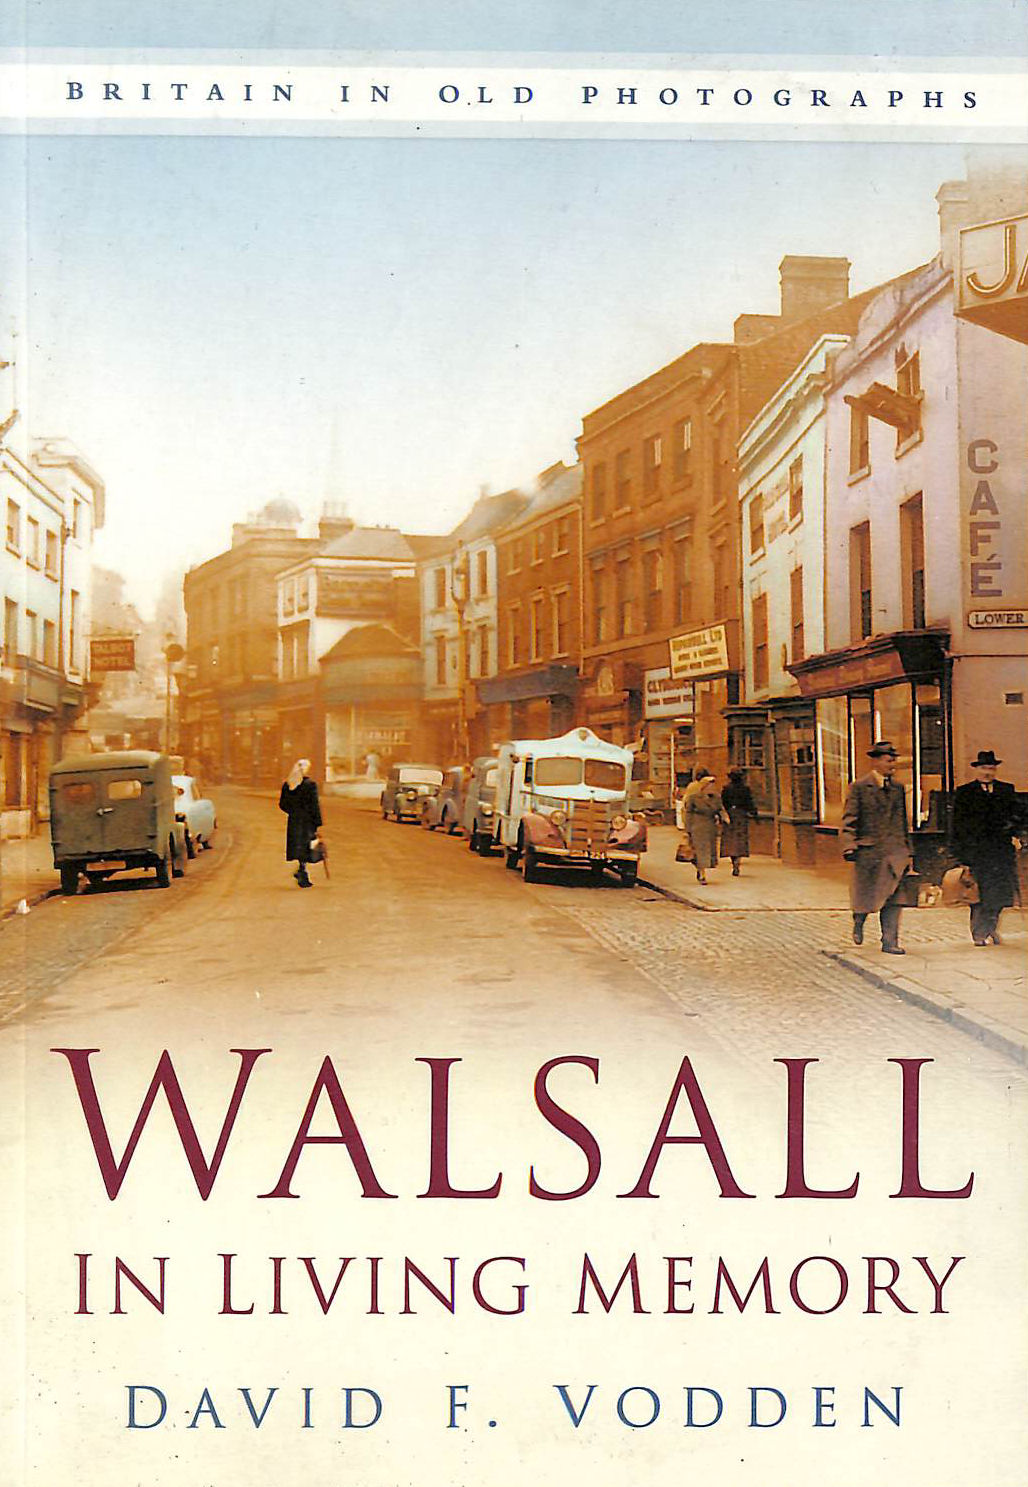 Image for Walsall In Living Memory (Britain In Old Photographs)